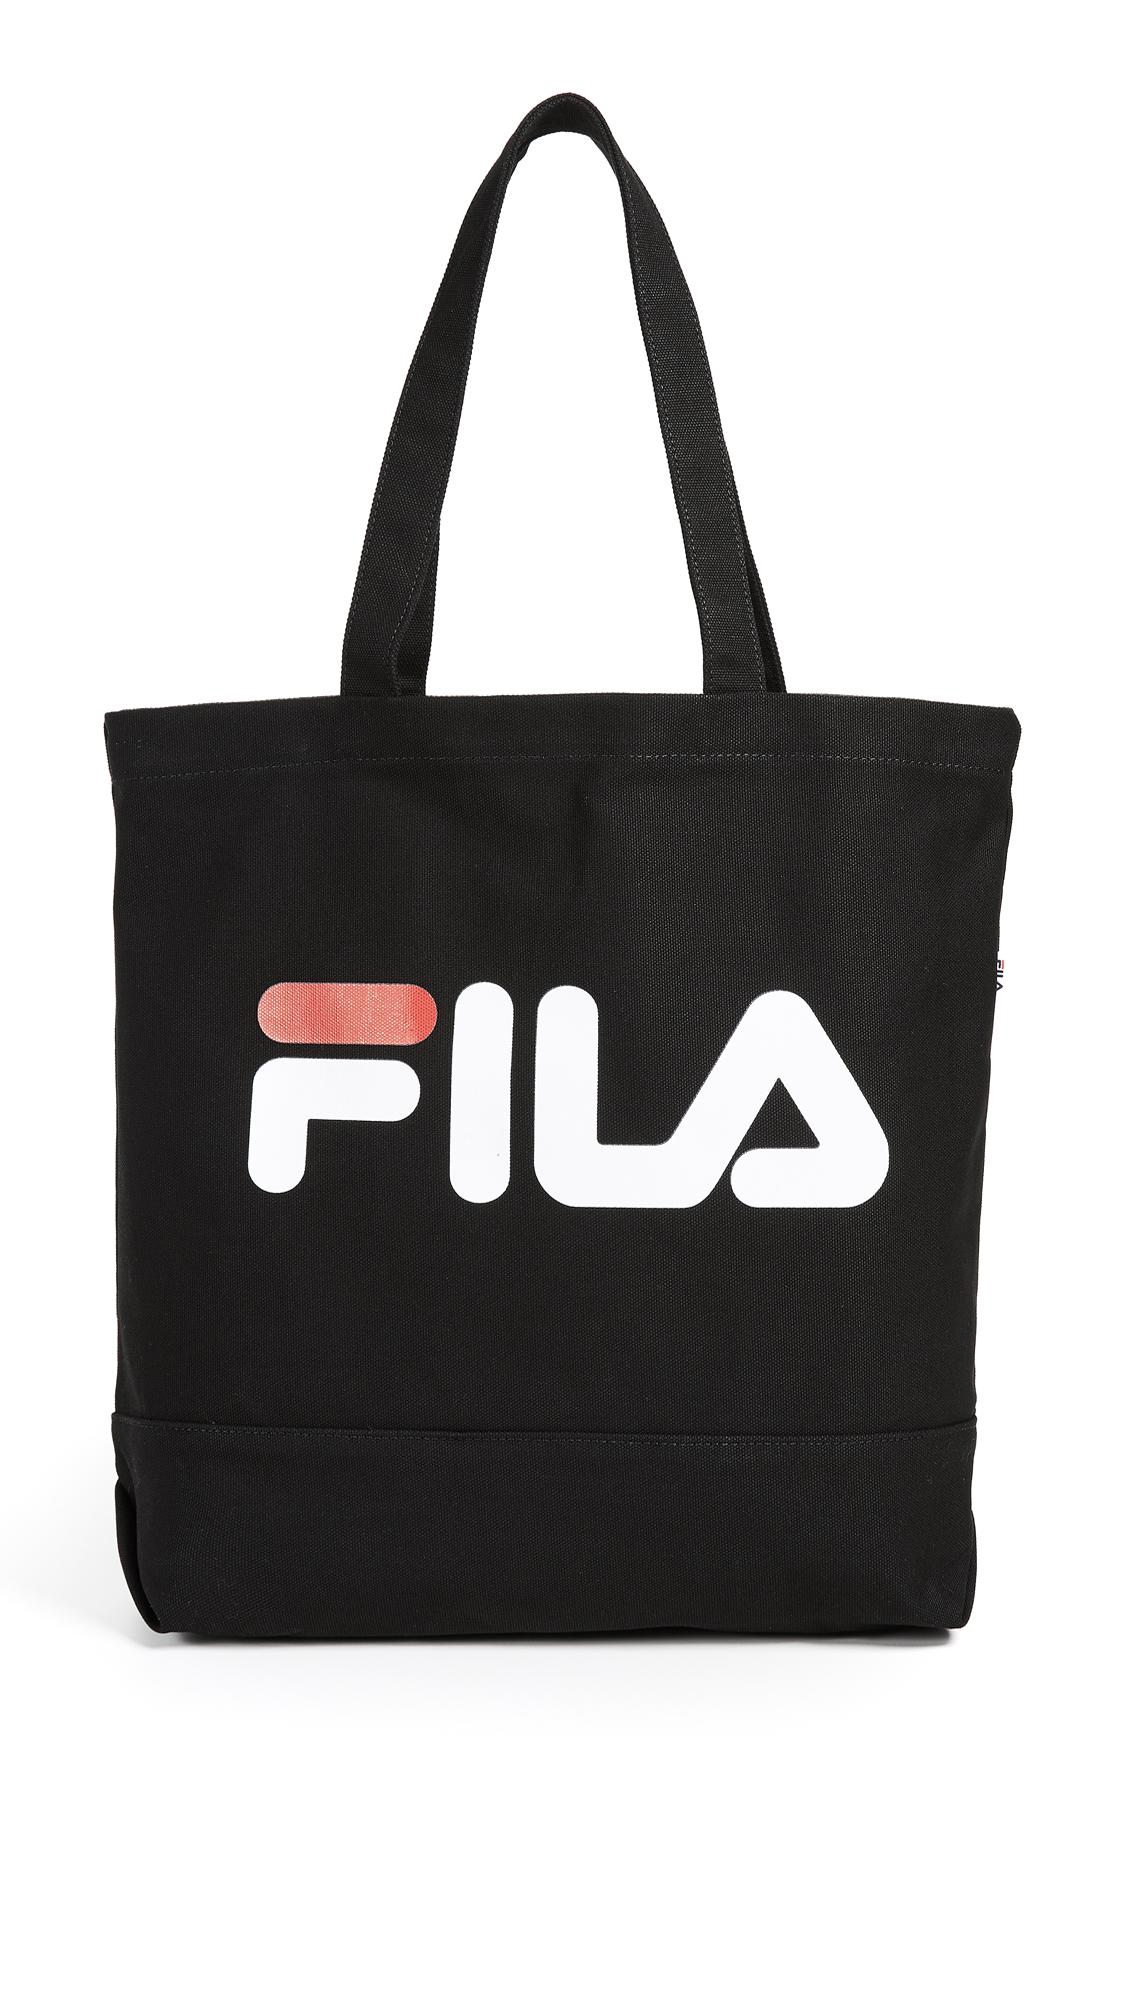 Fila Canvas Tote Bag in Black for Men - Lyst 0f0a516d65d3b